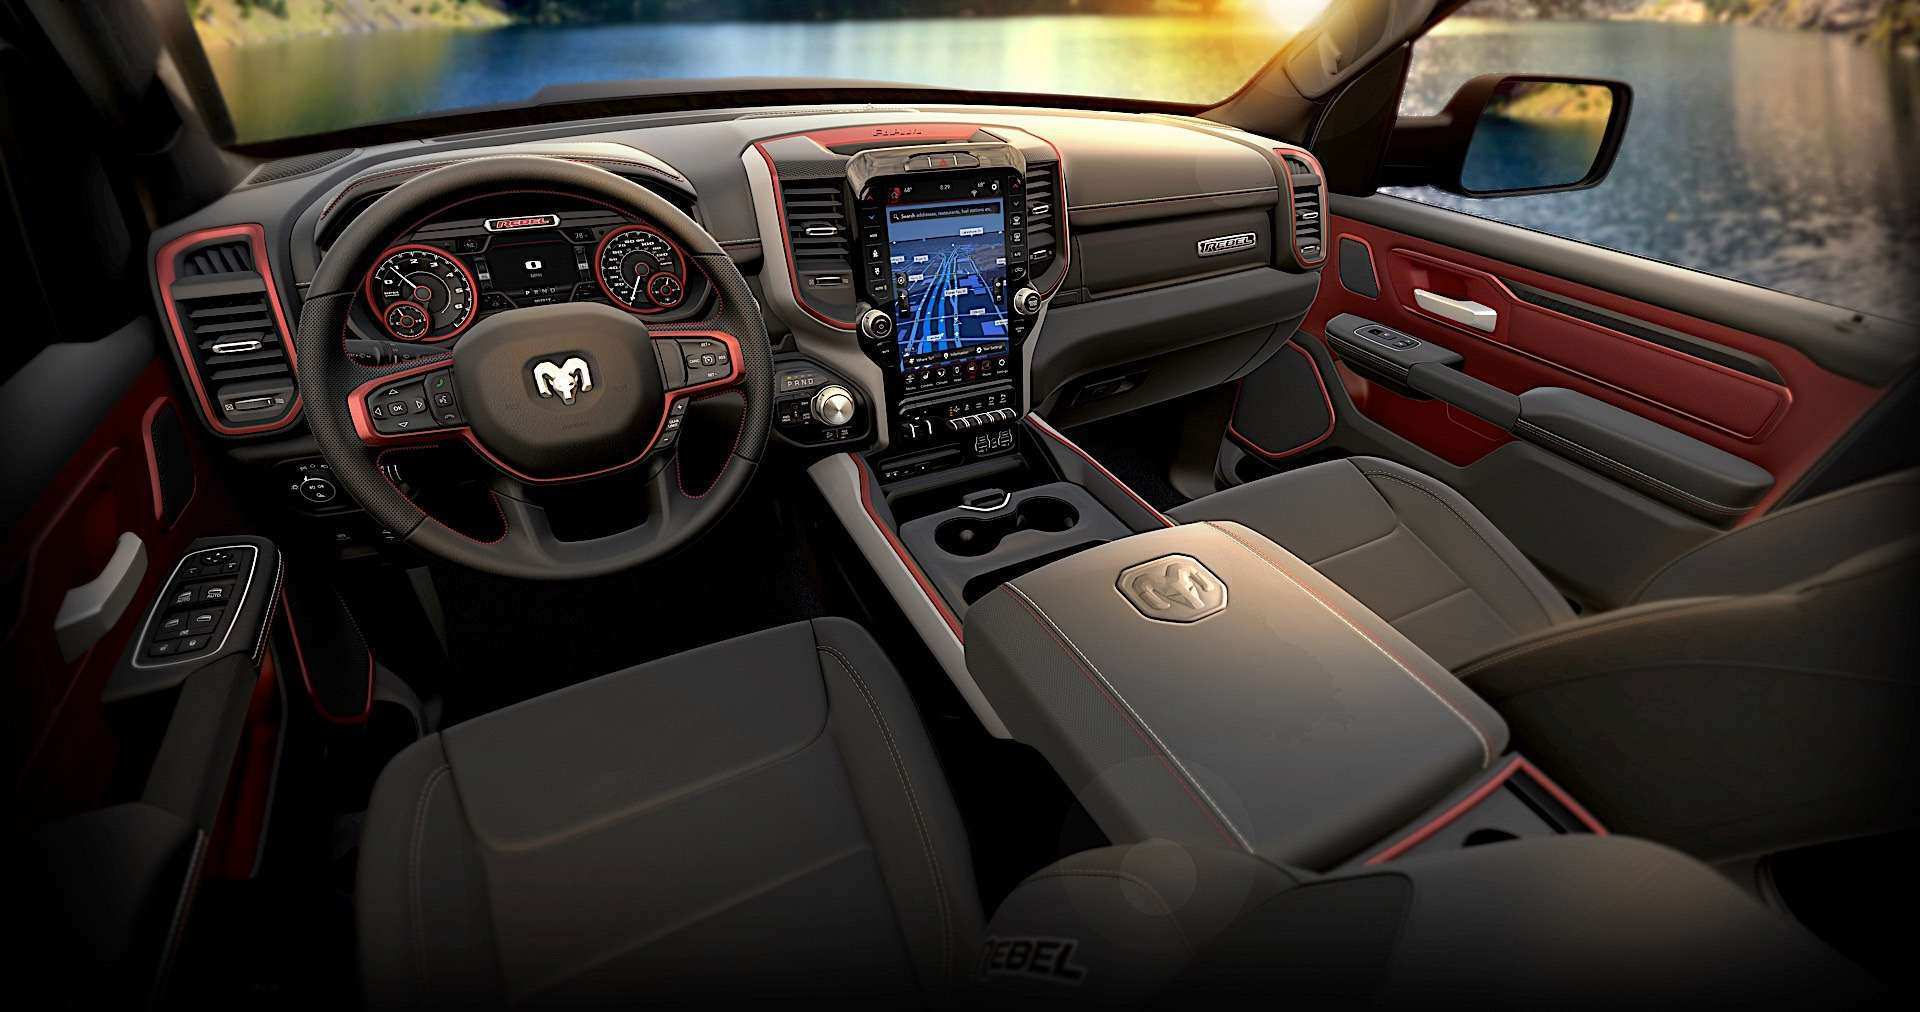 23 New 2019 Dodge Laramie Interior Redesign with 2019 Dodge Laramie Interior